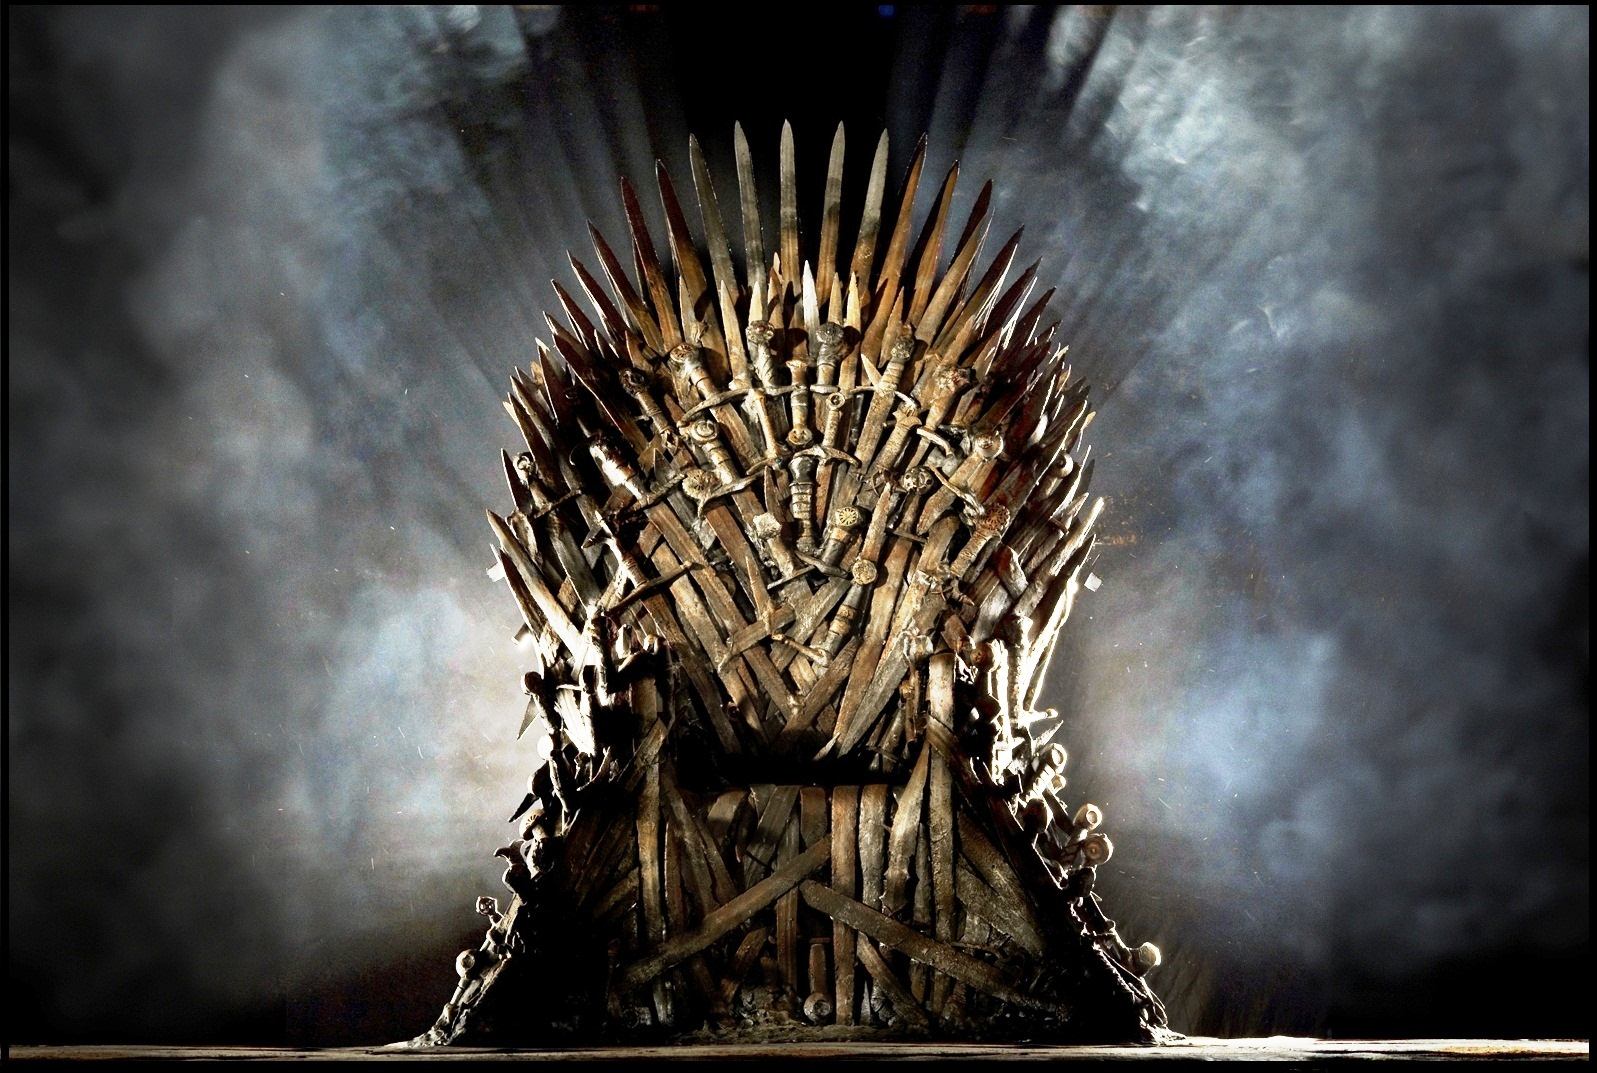 game-of-thrones-2011-wallpaper-iron-throne.jpg